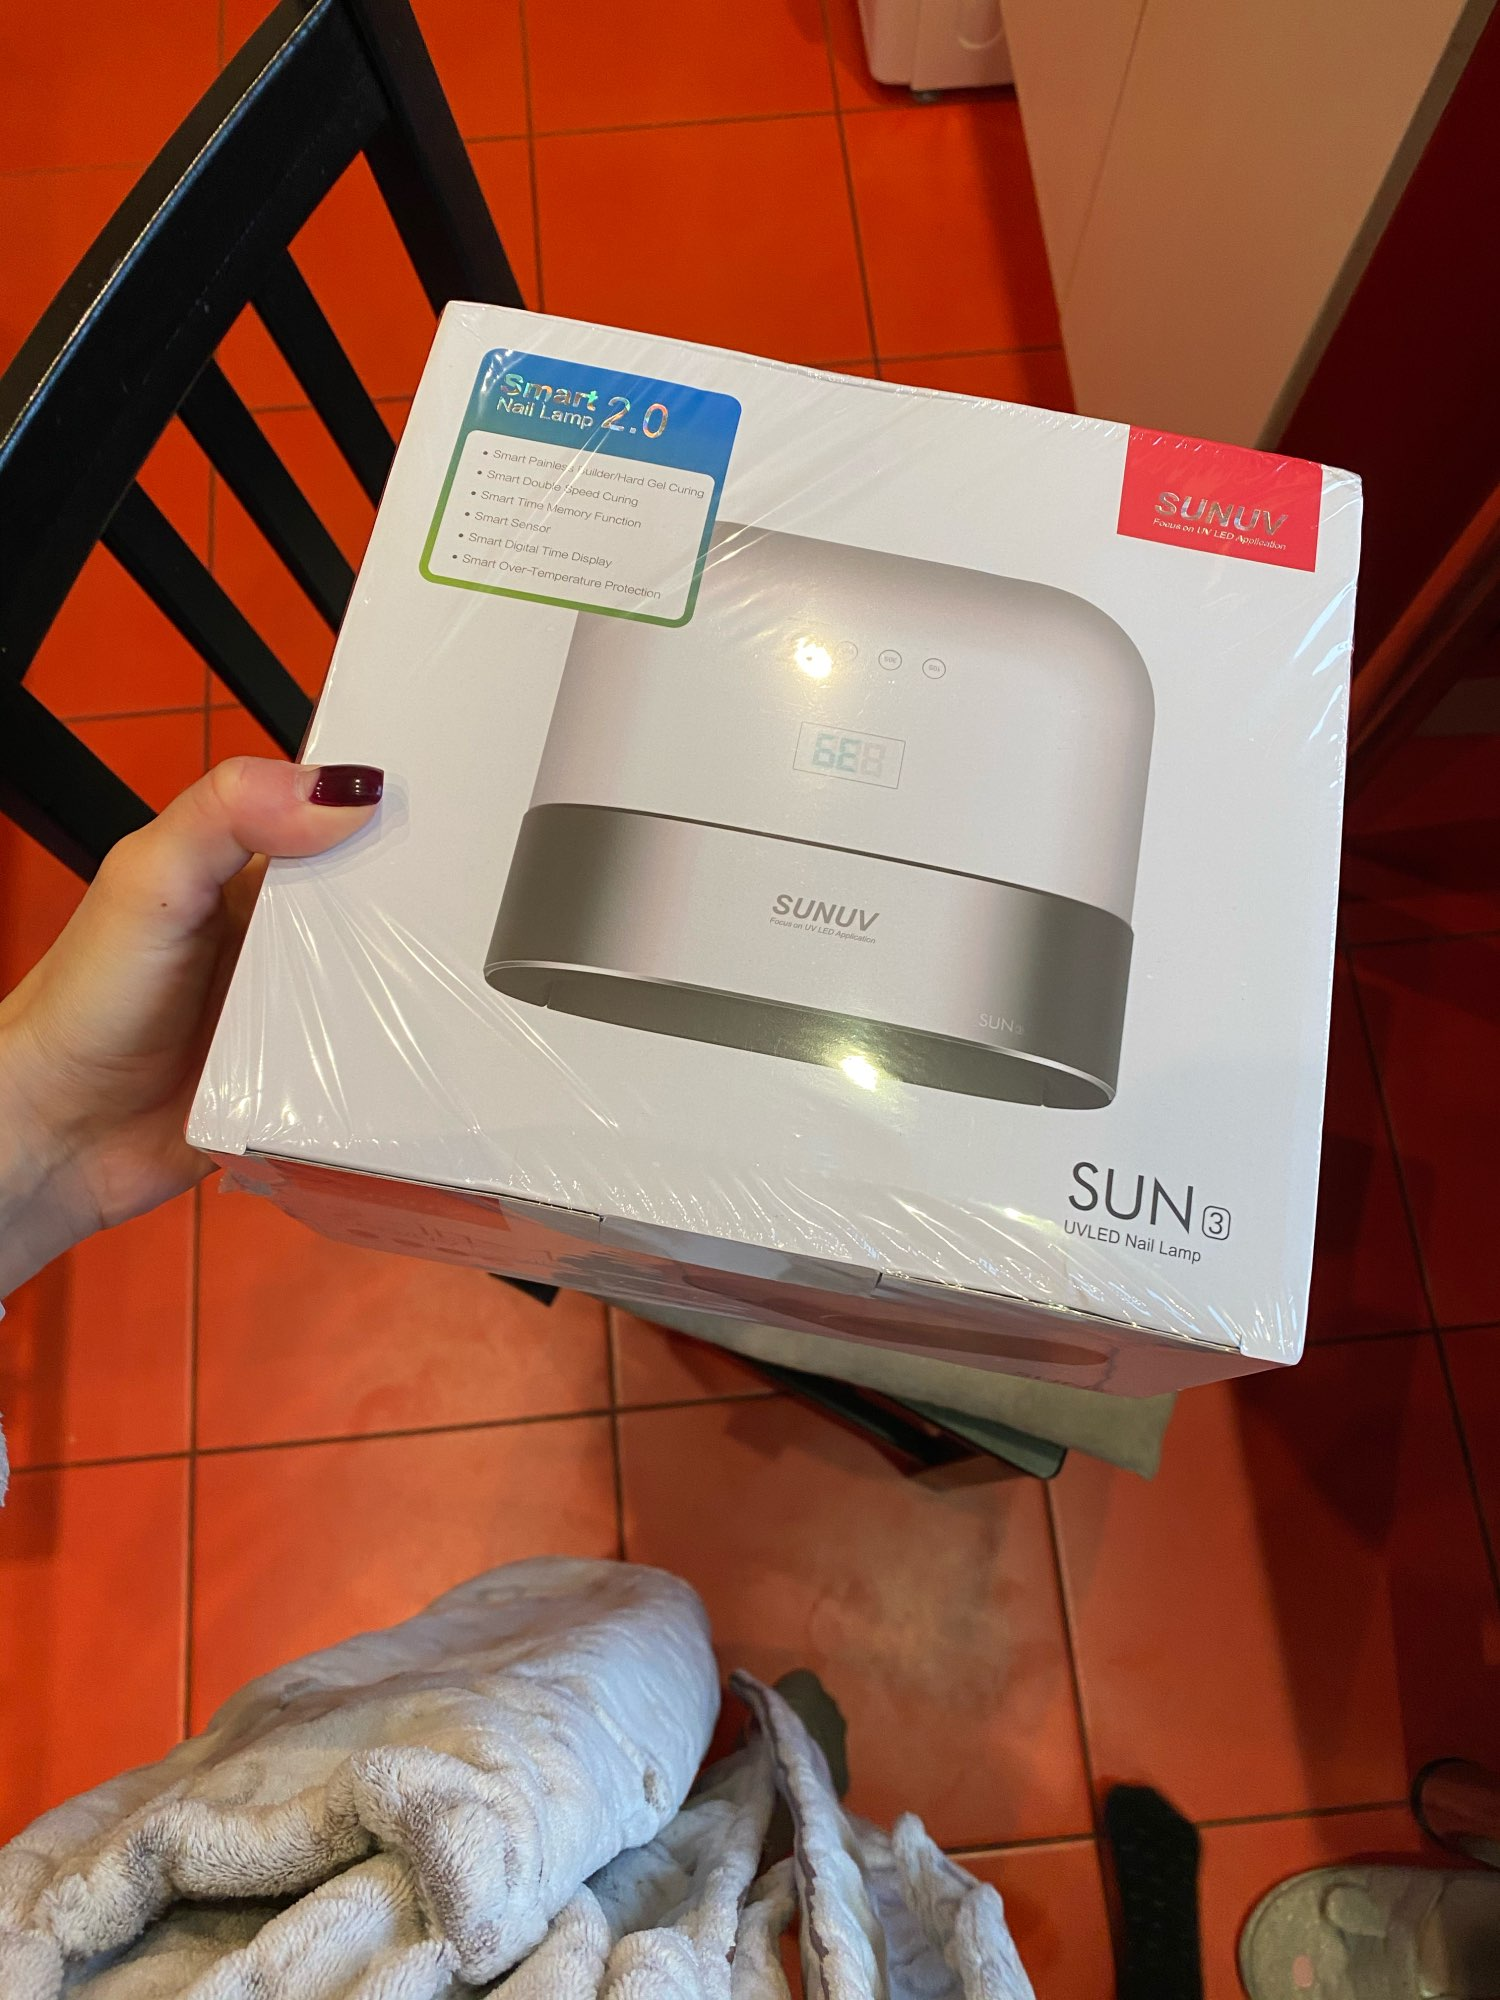 SUNUV SUN3 Smart 2.0 Nail Dryer 48W UV LED Lamp Nail with Smart Invisible Digital Timer Display Nail Drying Machine reviews №1 189312